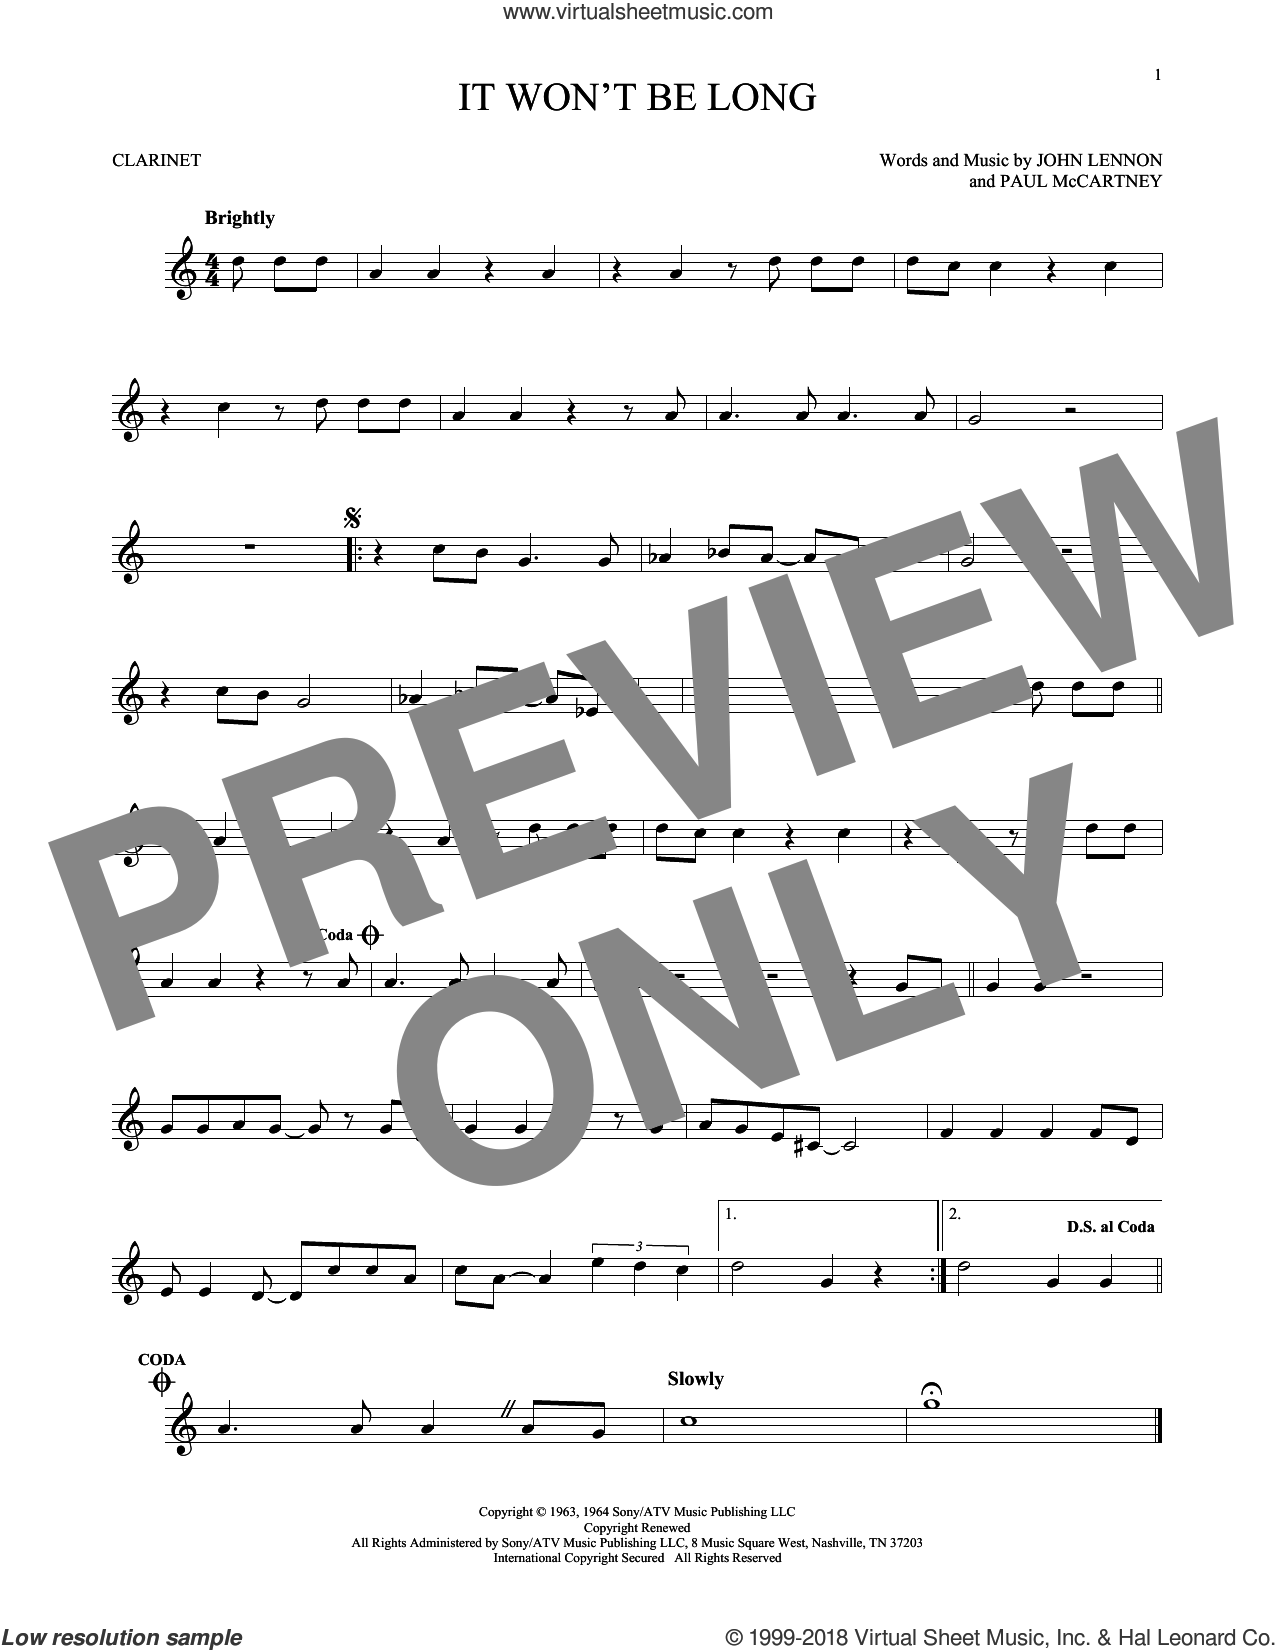 It Won't Be Long sheet music for clarinet solo by Paul McCartney, The Beatles and John Lennon. Score Image Preview.